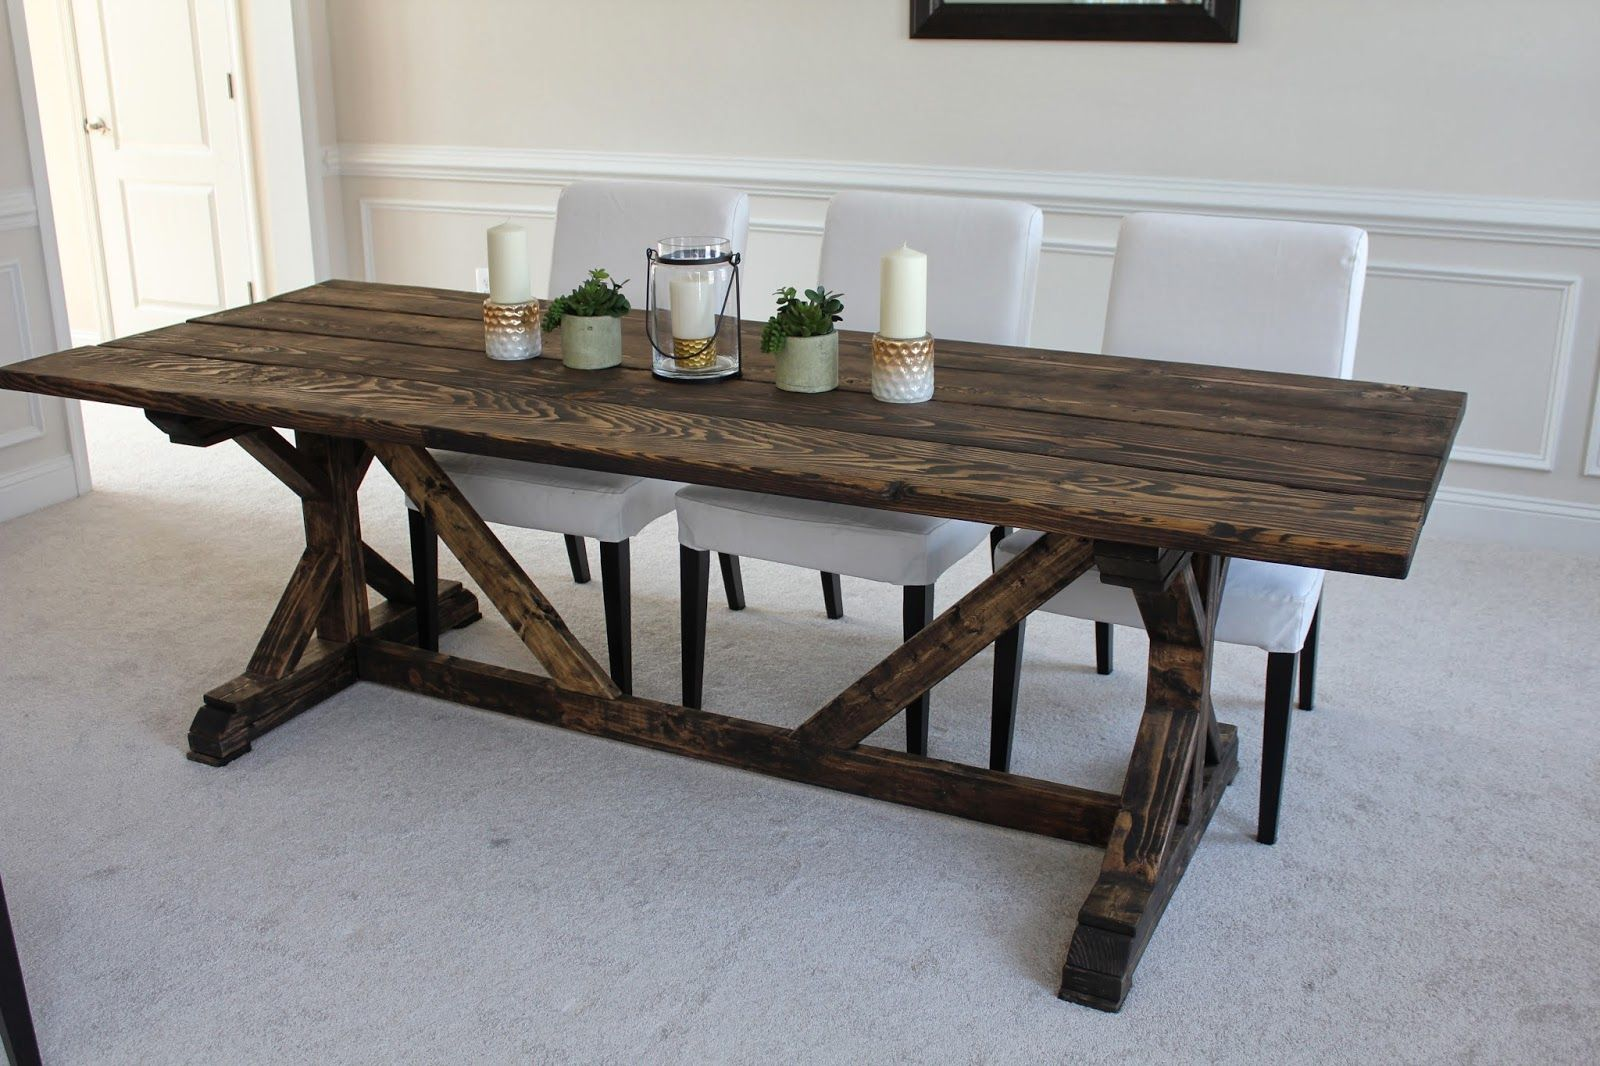 Wooden Farmhouse Table Plans DIY blueprints Farmhouse table plans EASY HOW TO